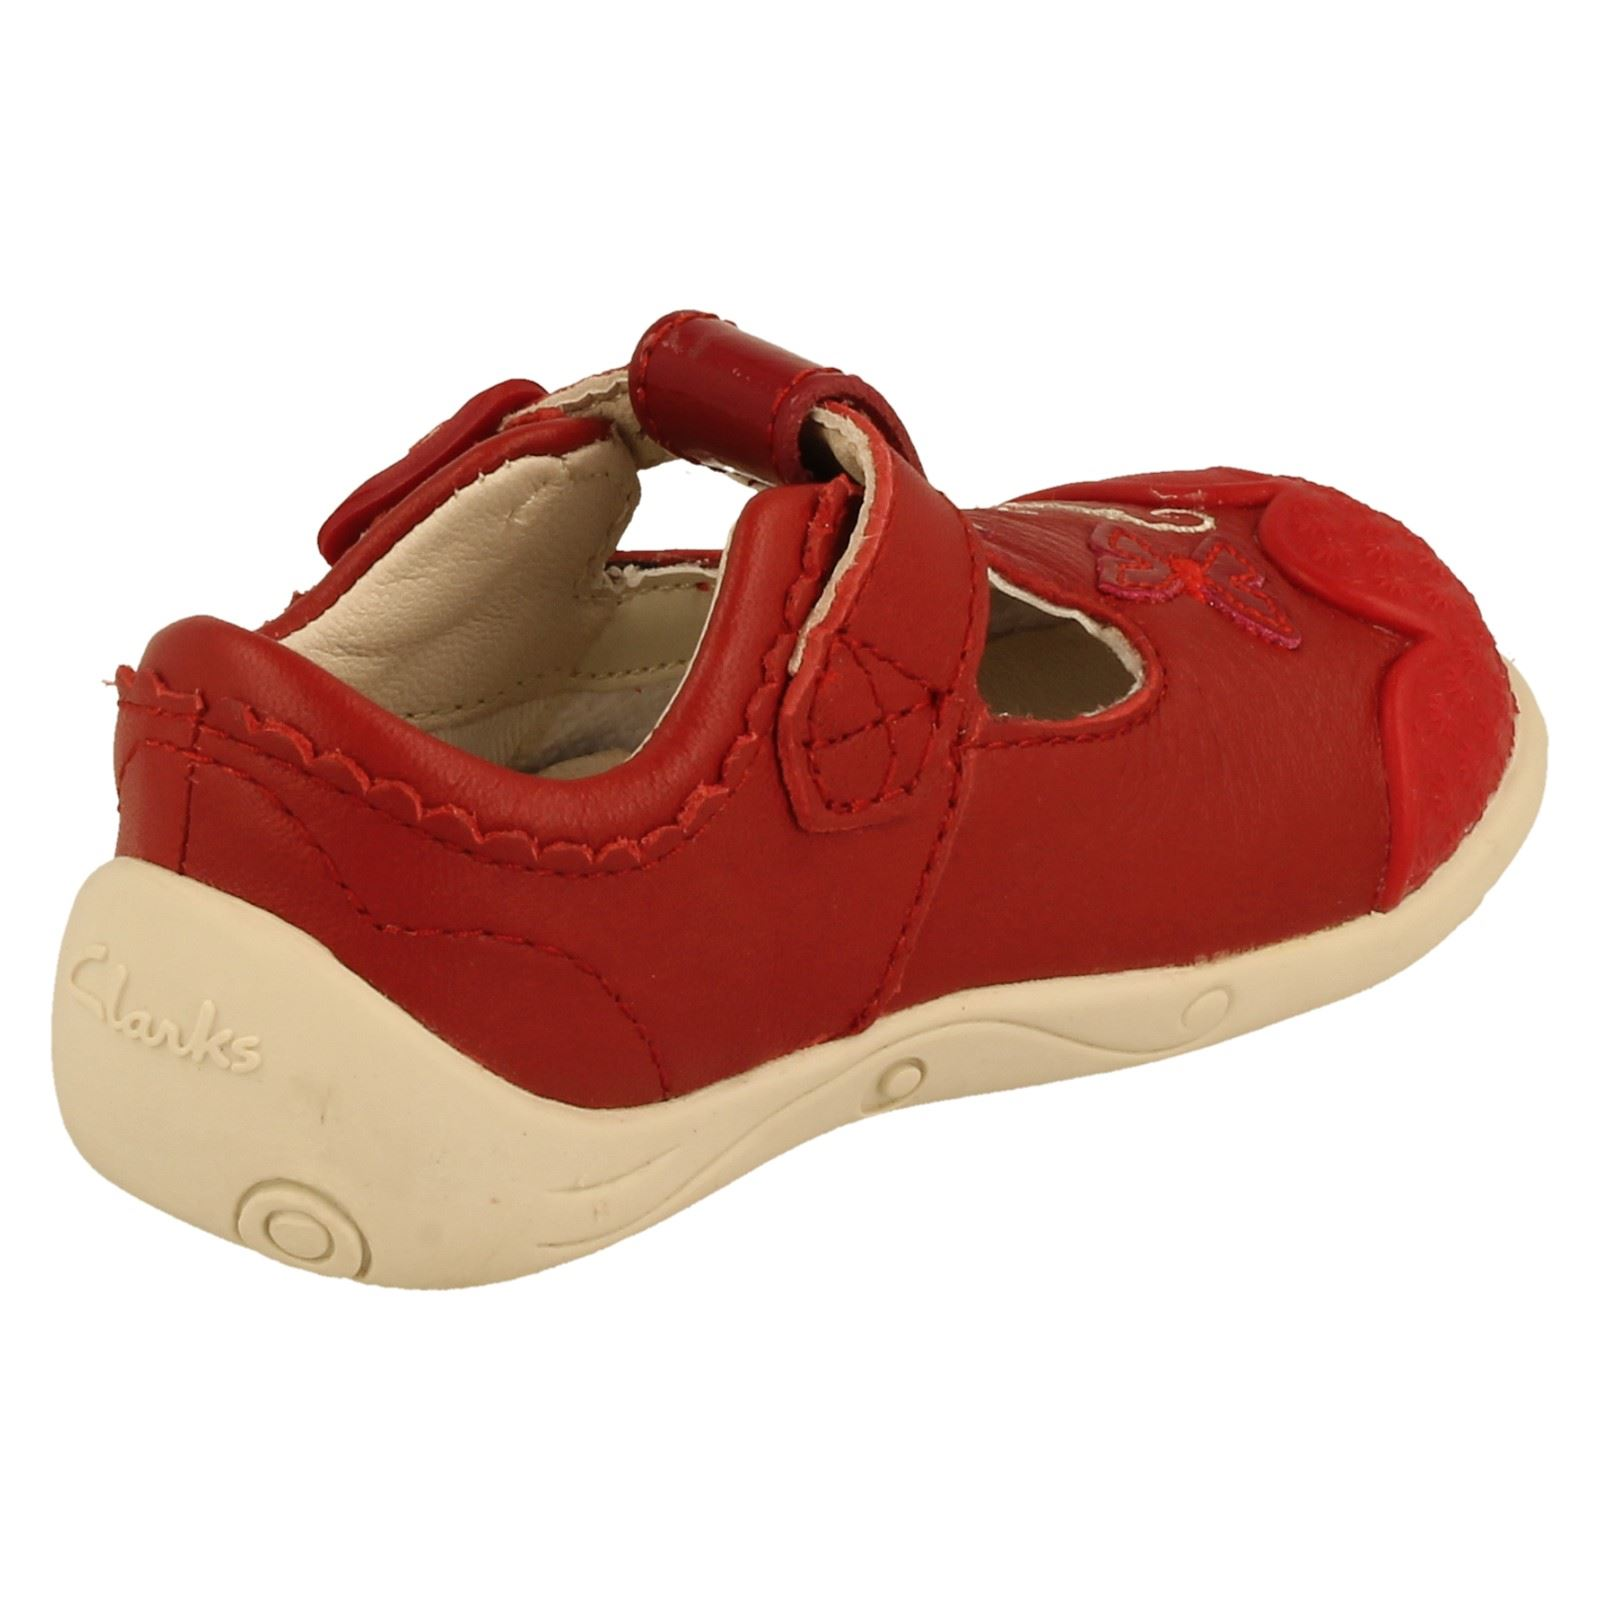 Girls Clarks T-Bar First Shoes Pippy Bay -W